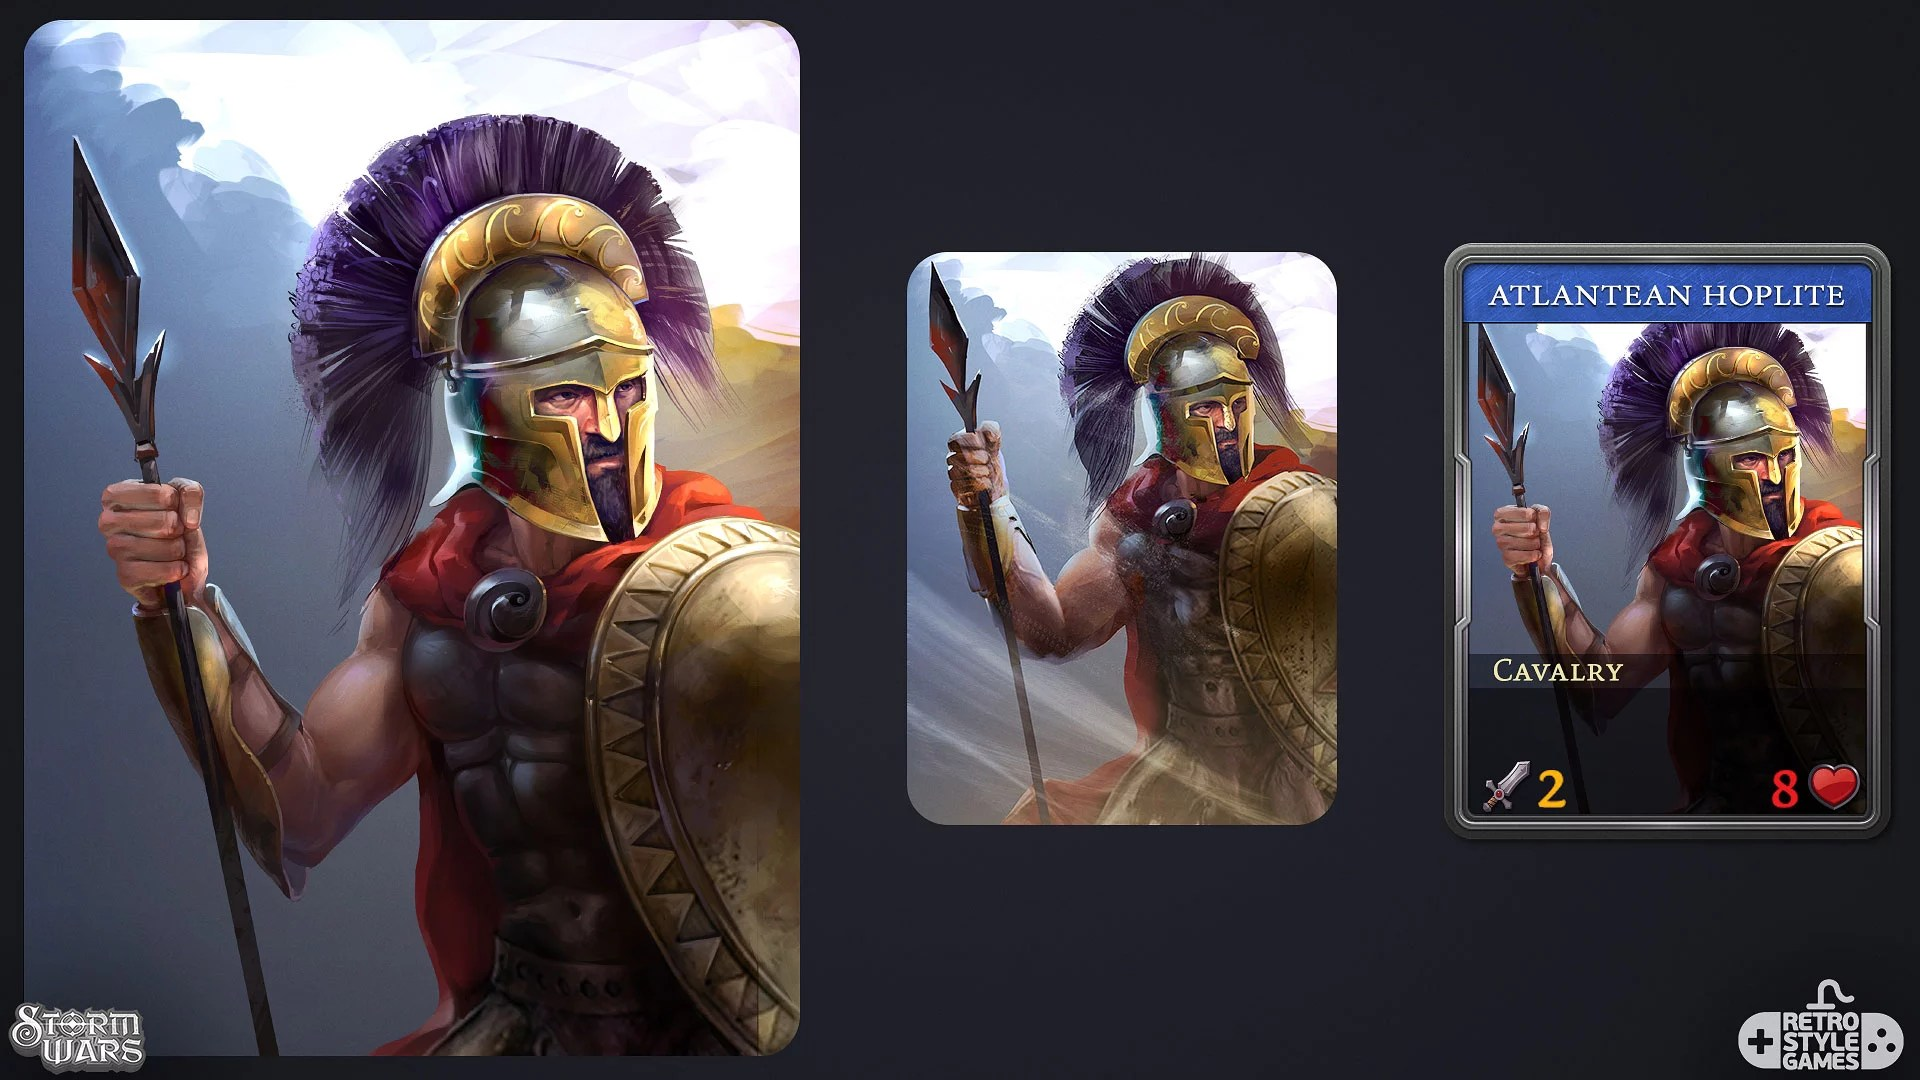 Storm Wars Collectible Cards Atlantean